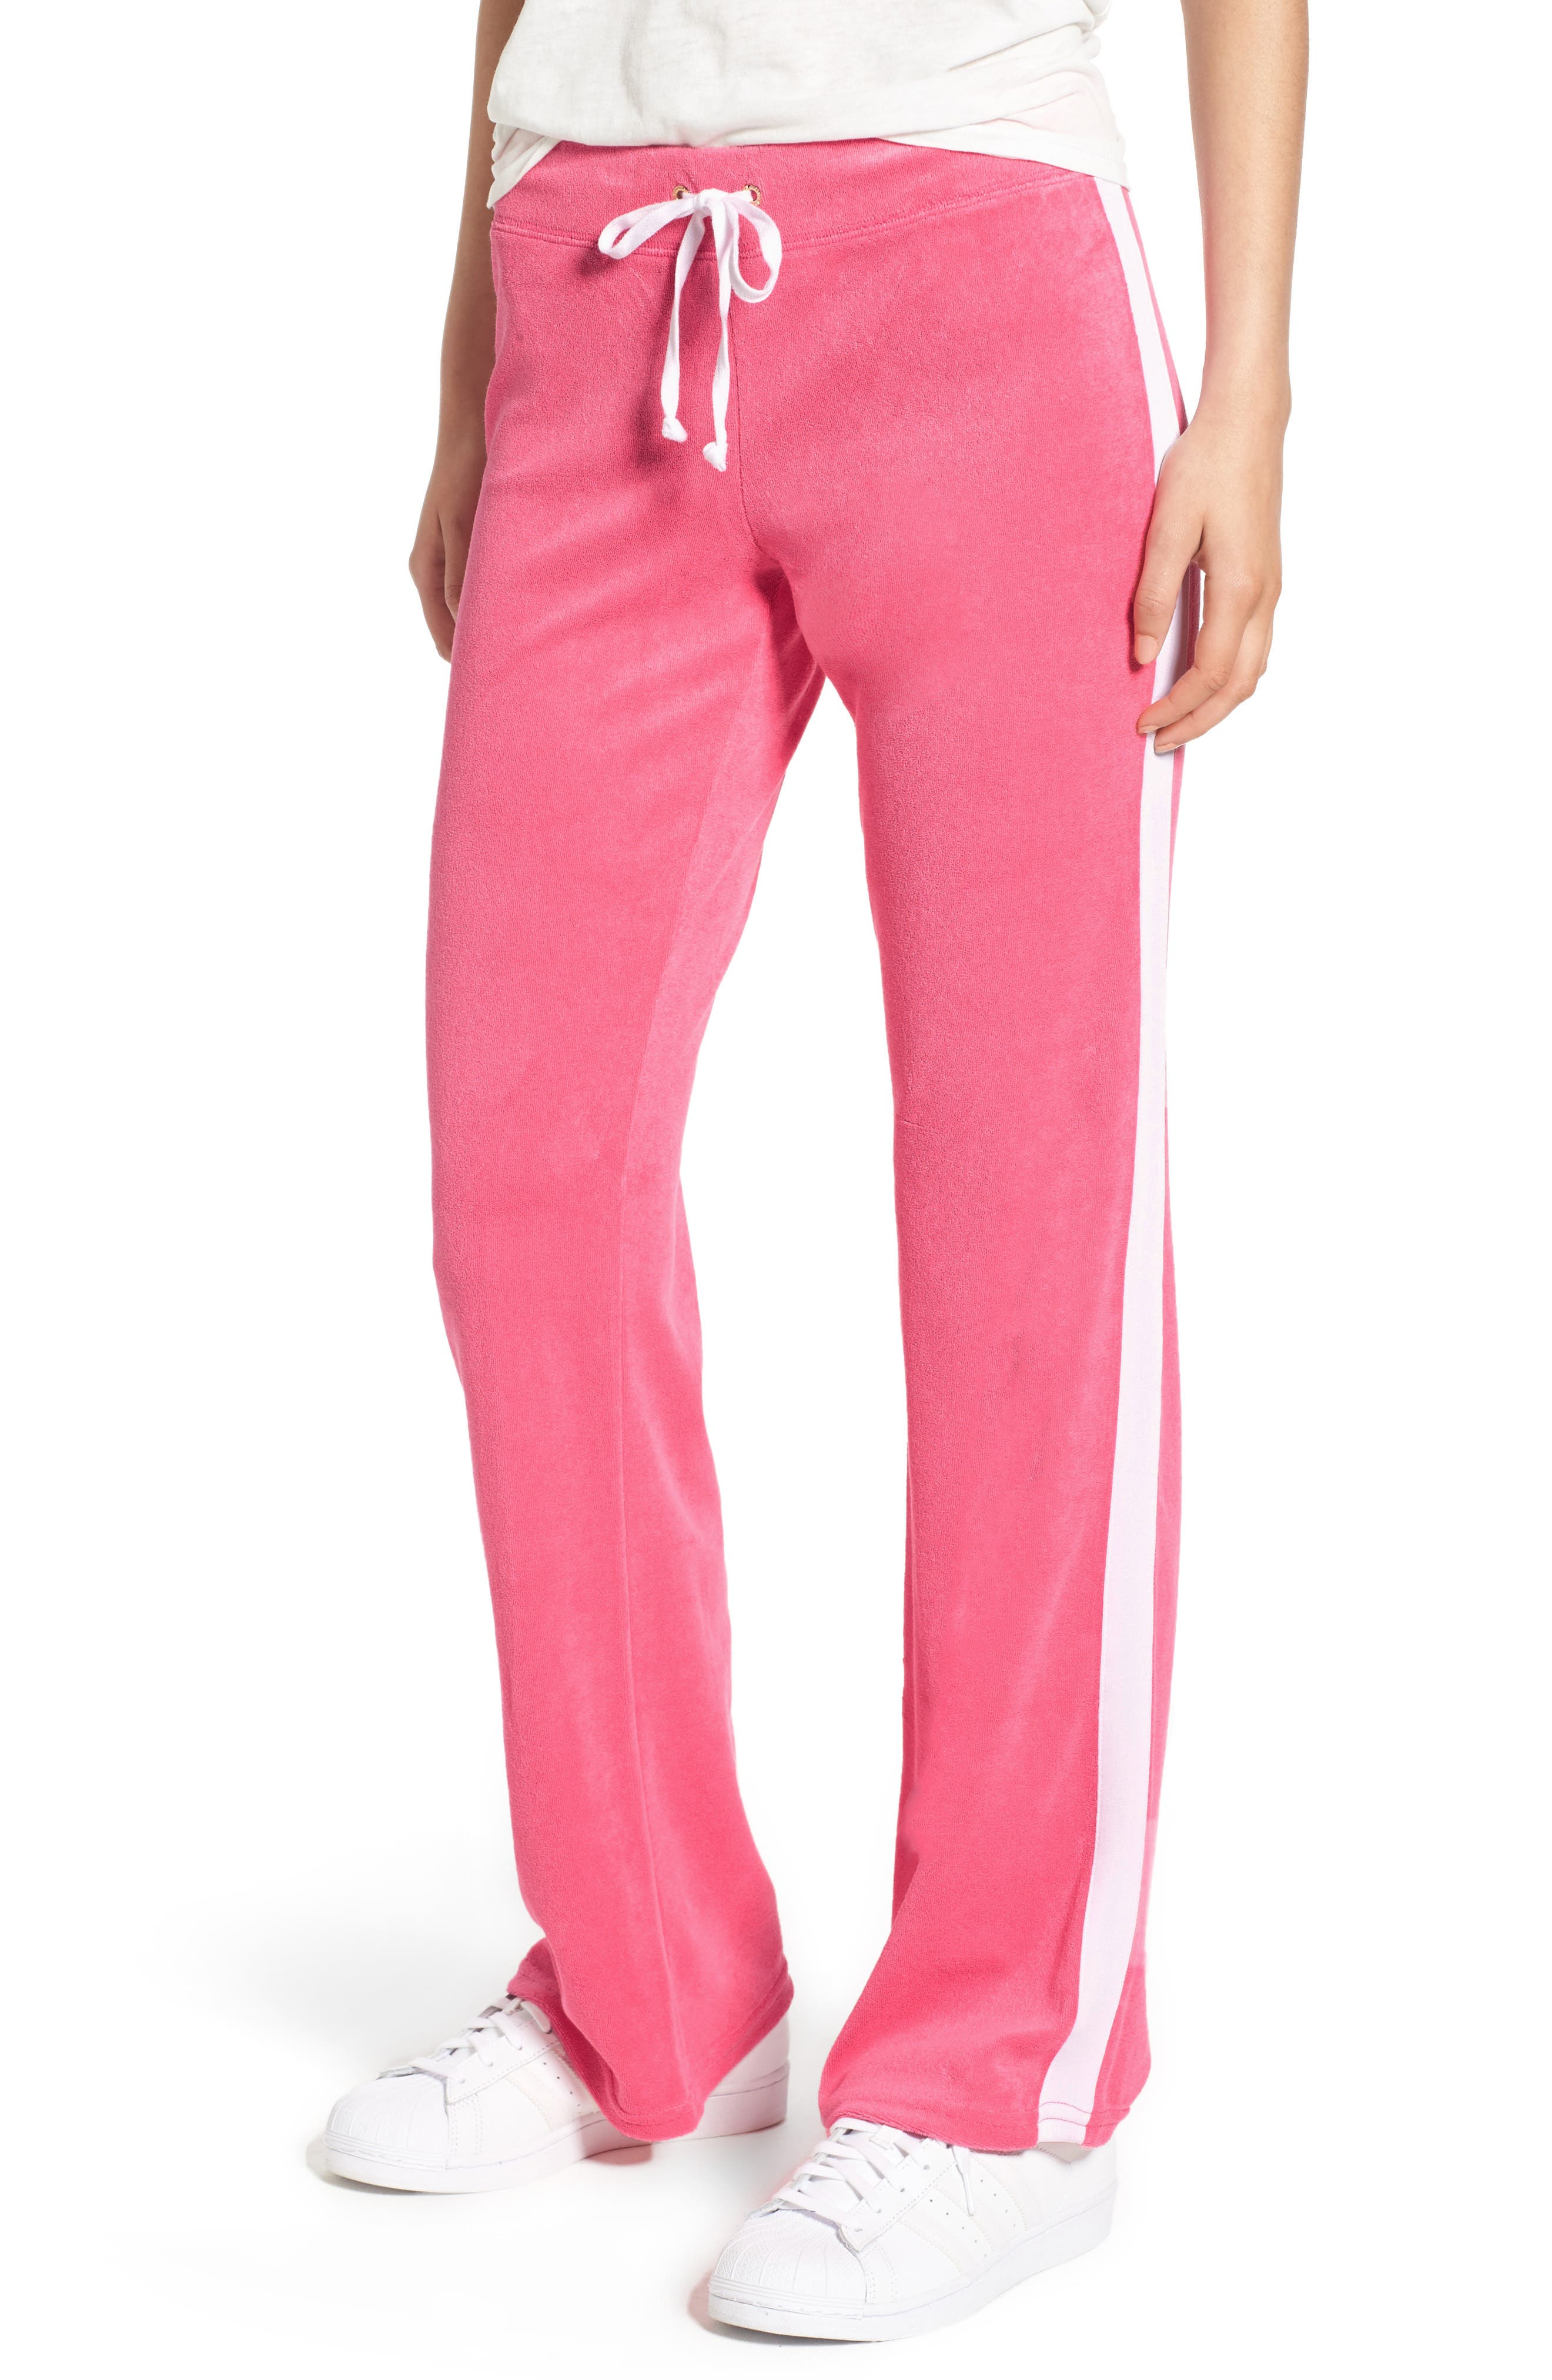 Venice Beach Del Ray Microterry Pants,                         Main,                         color, Precocious Pink